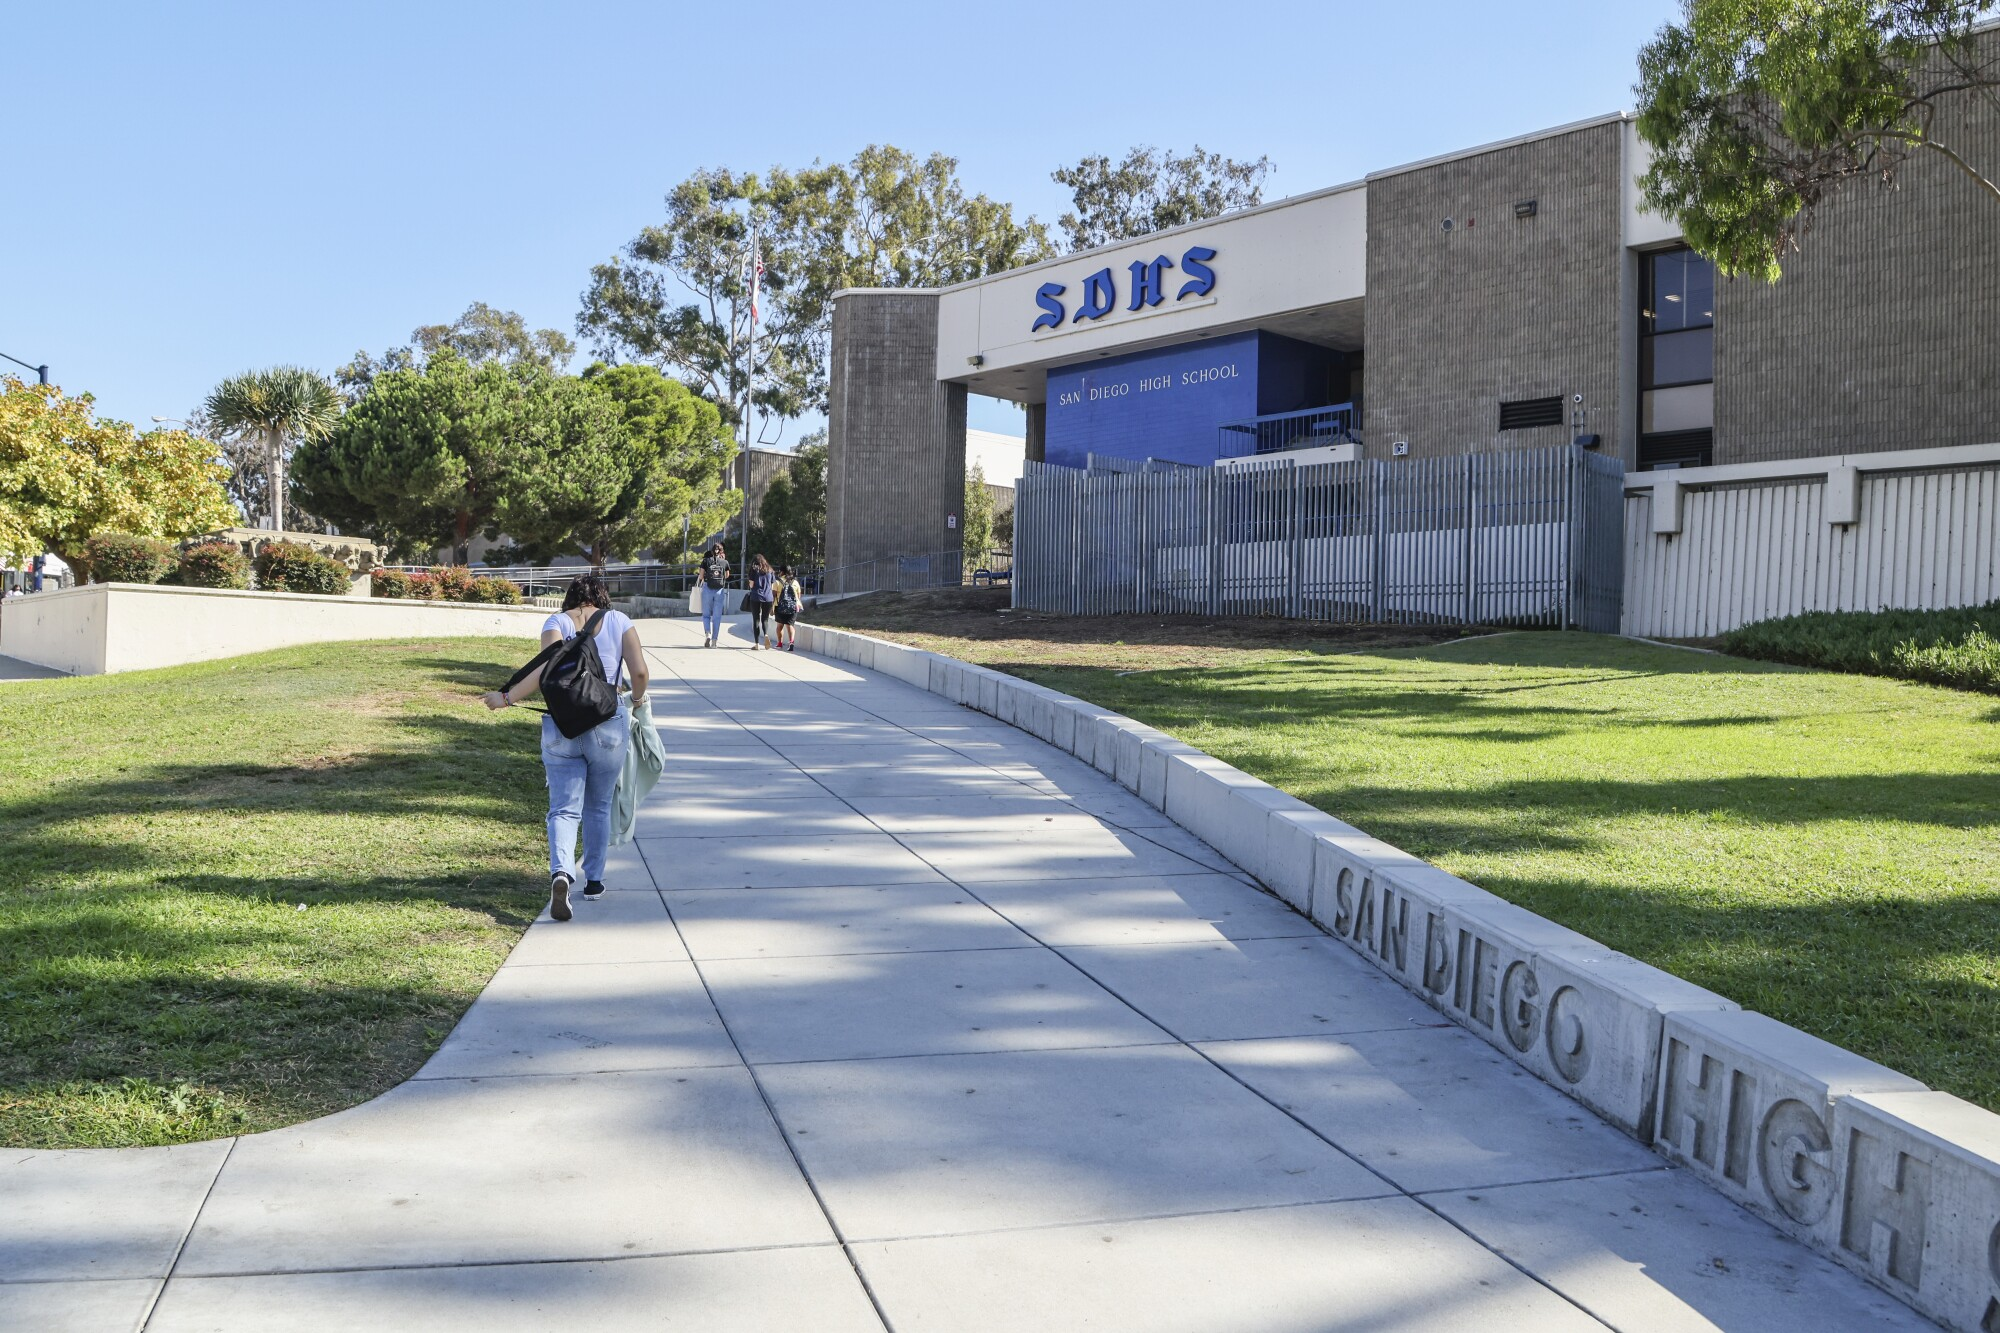 The entrance to San Diego High School in Balboa Park.